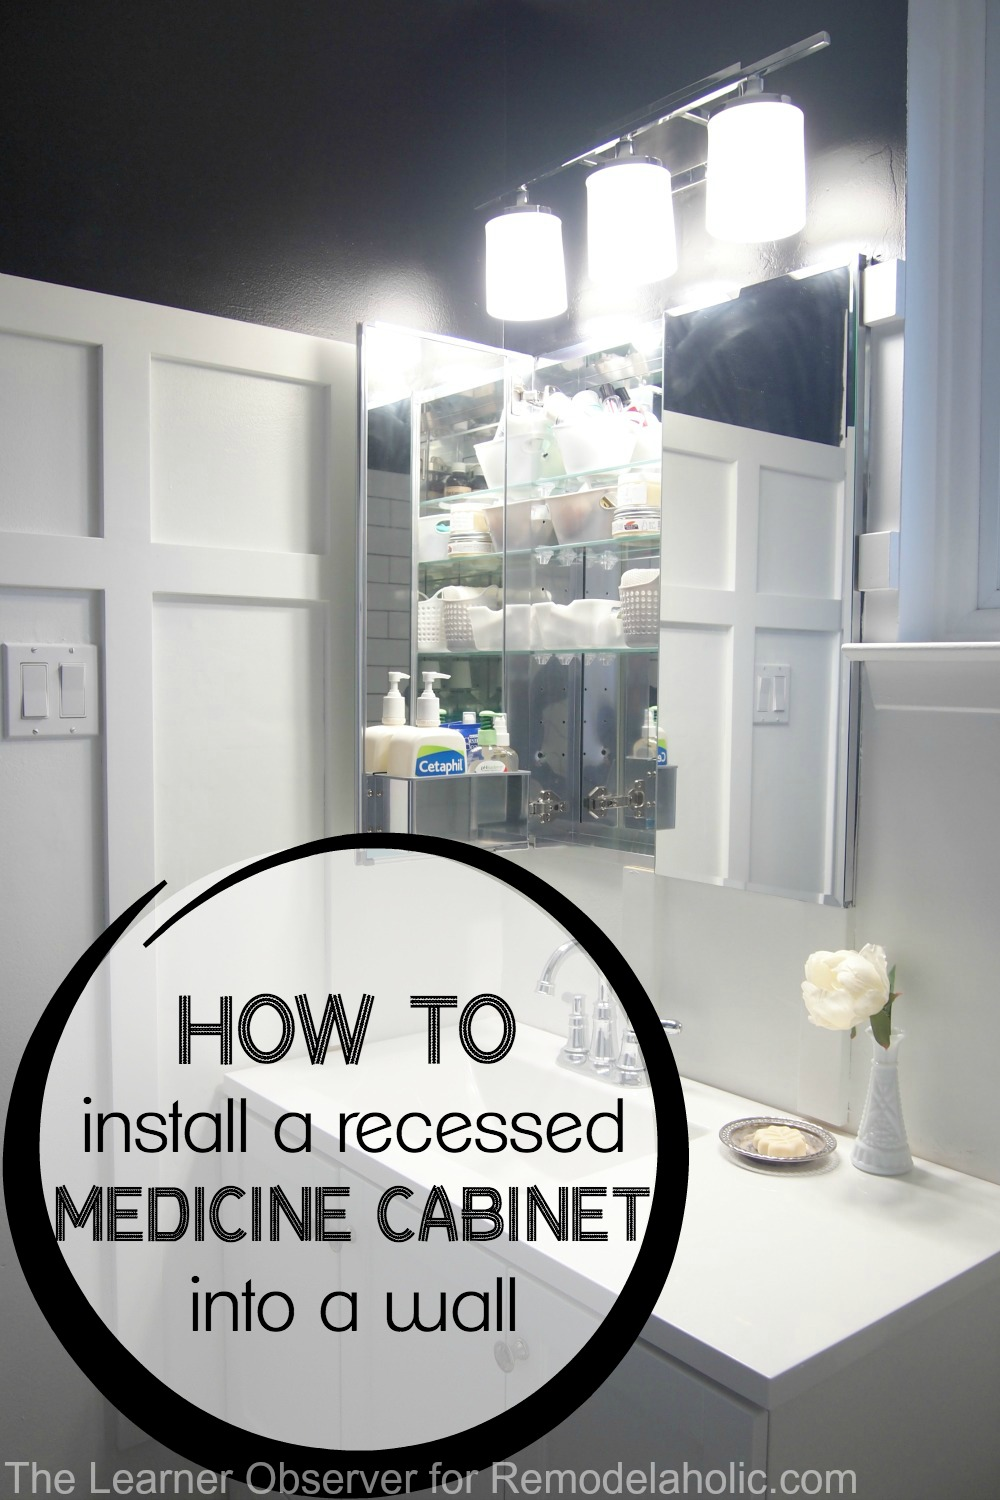 I had no idea it was this easy to install a recessed medicine cabinet! This & Remodelaholic | How to Install a recessed medicine cabinet